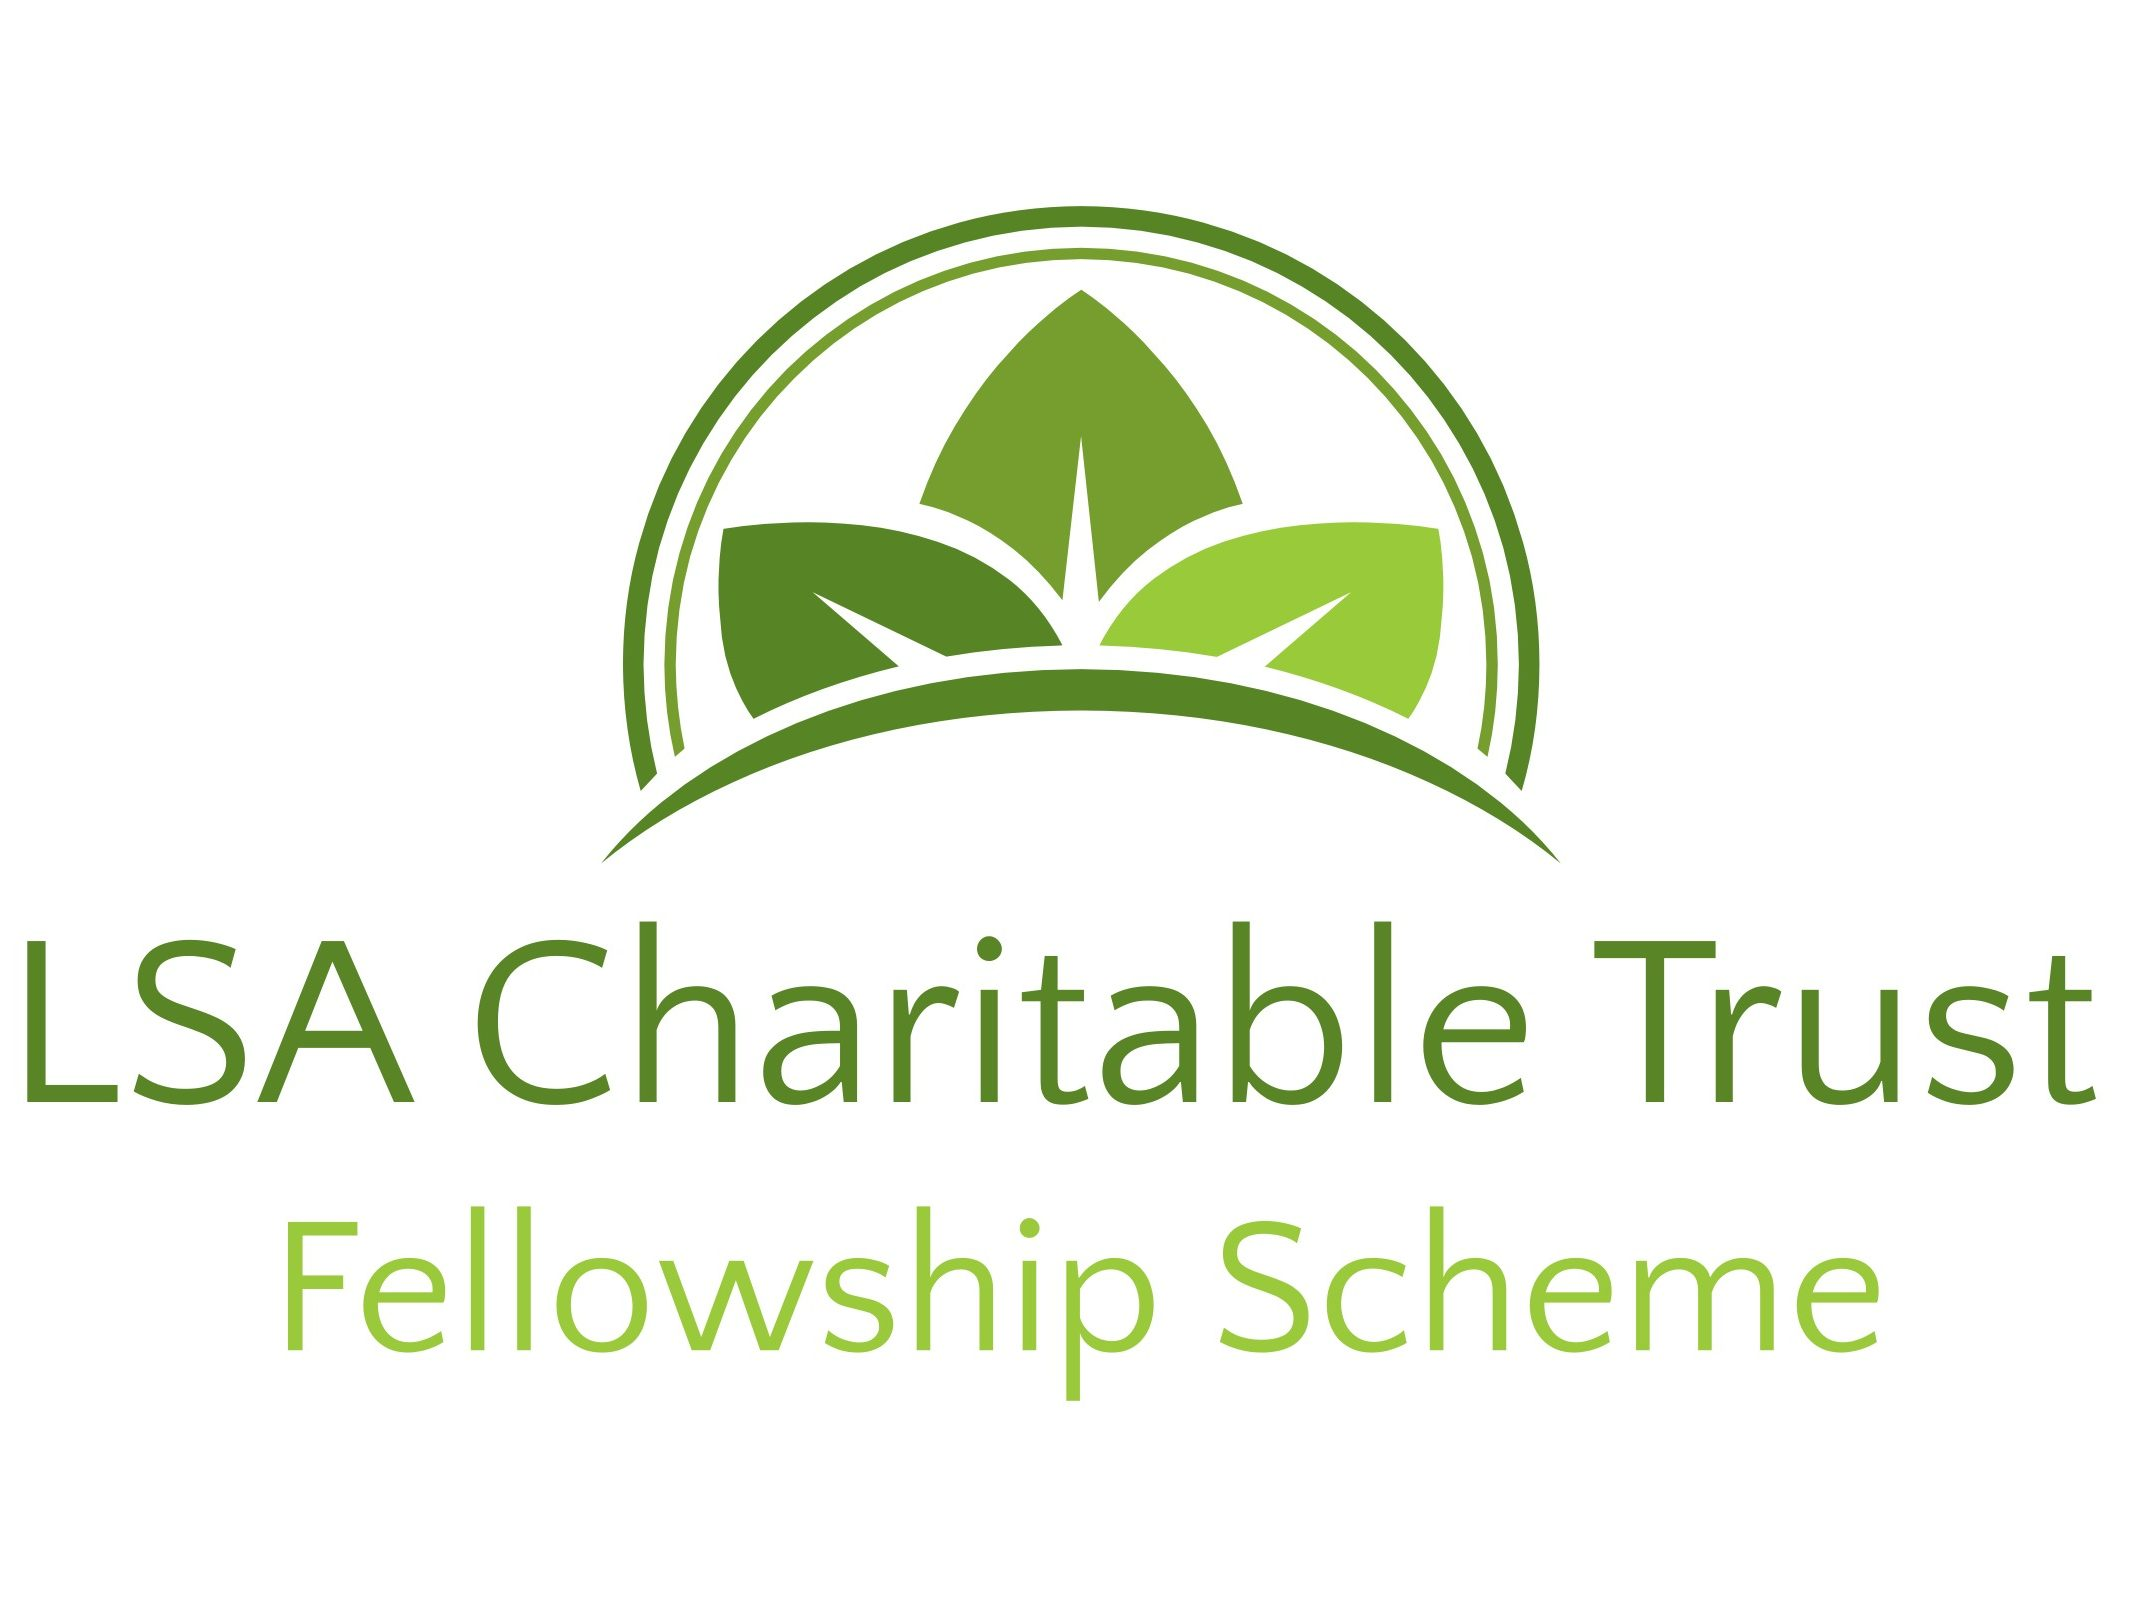 LSA CT Fellowship Scheme